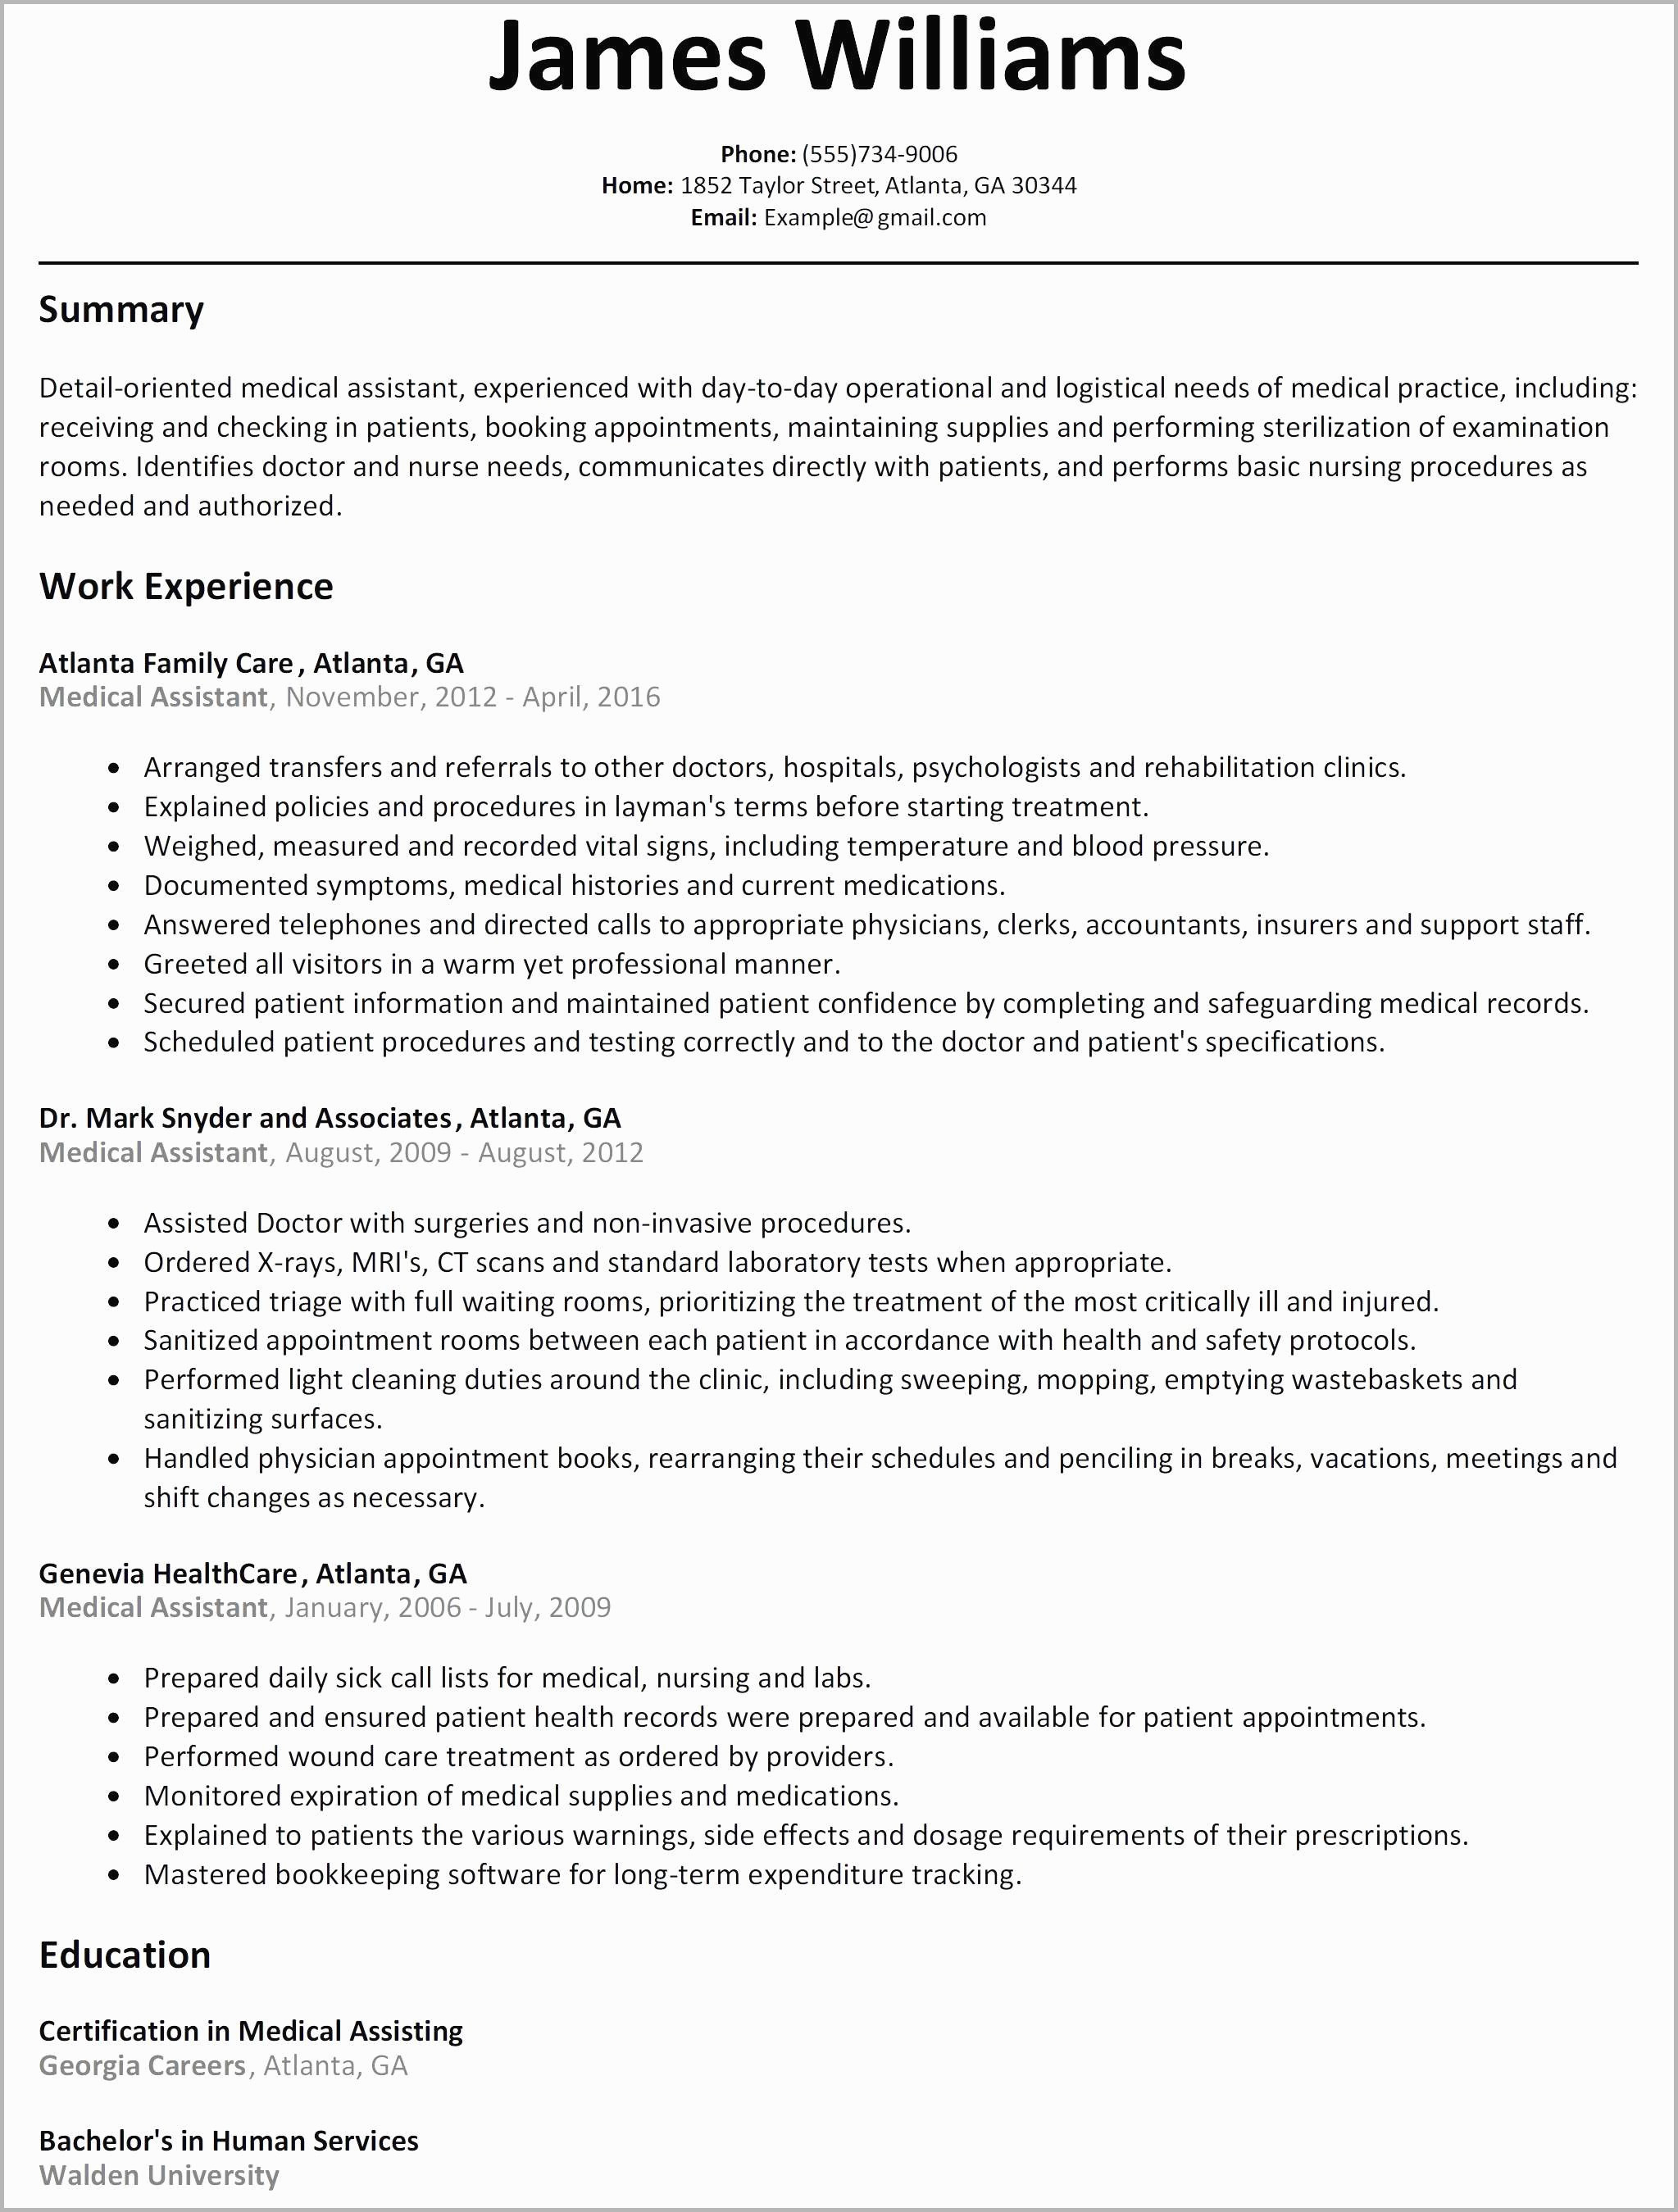 Property Manager Resume Template - Best Property Manager Resume Sample